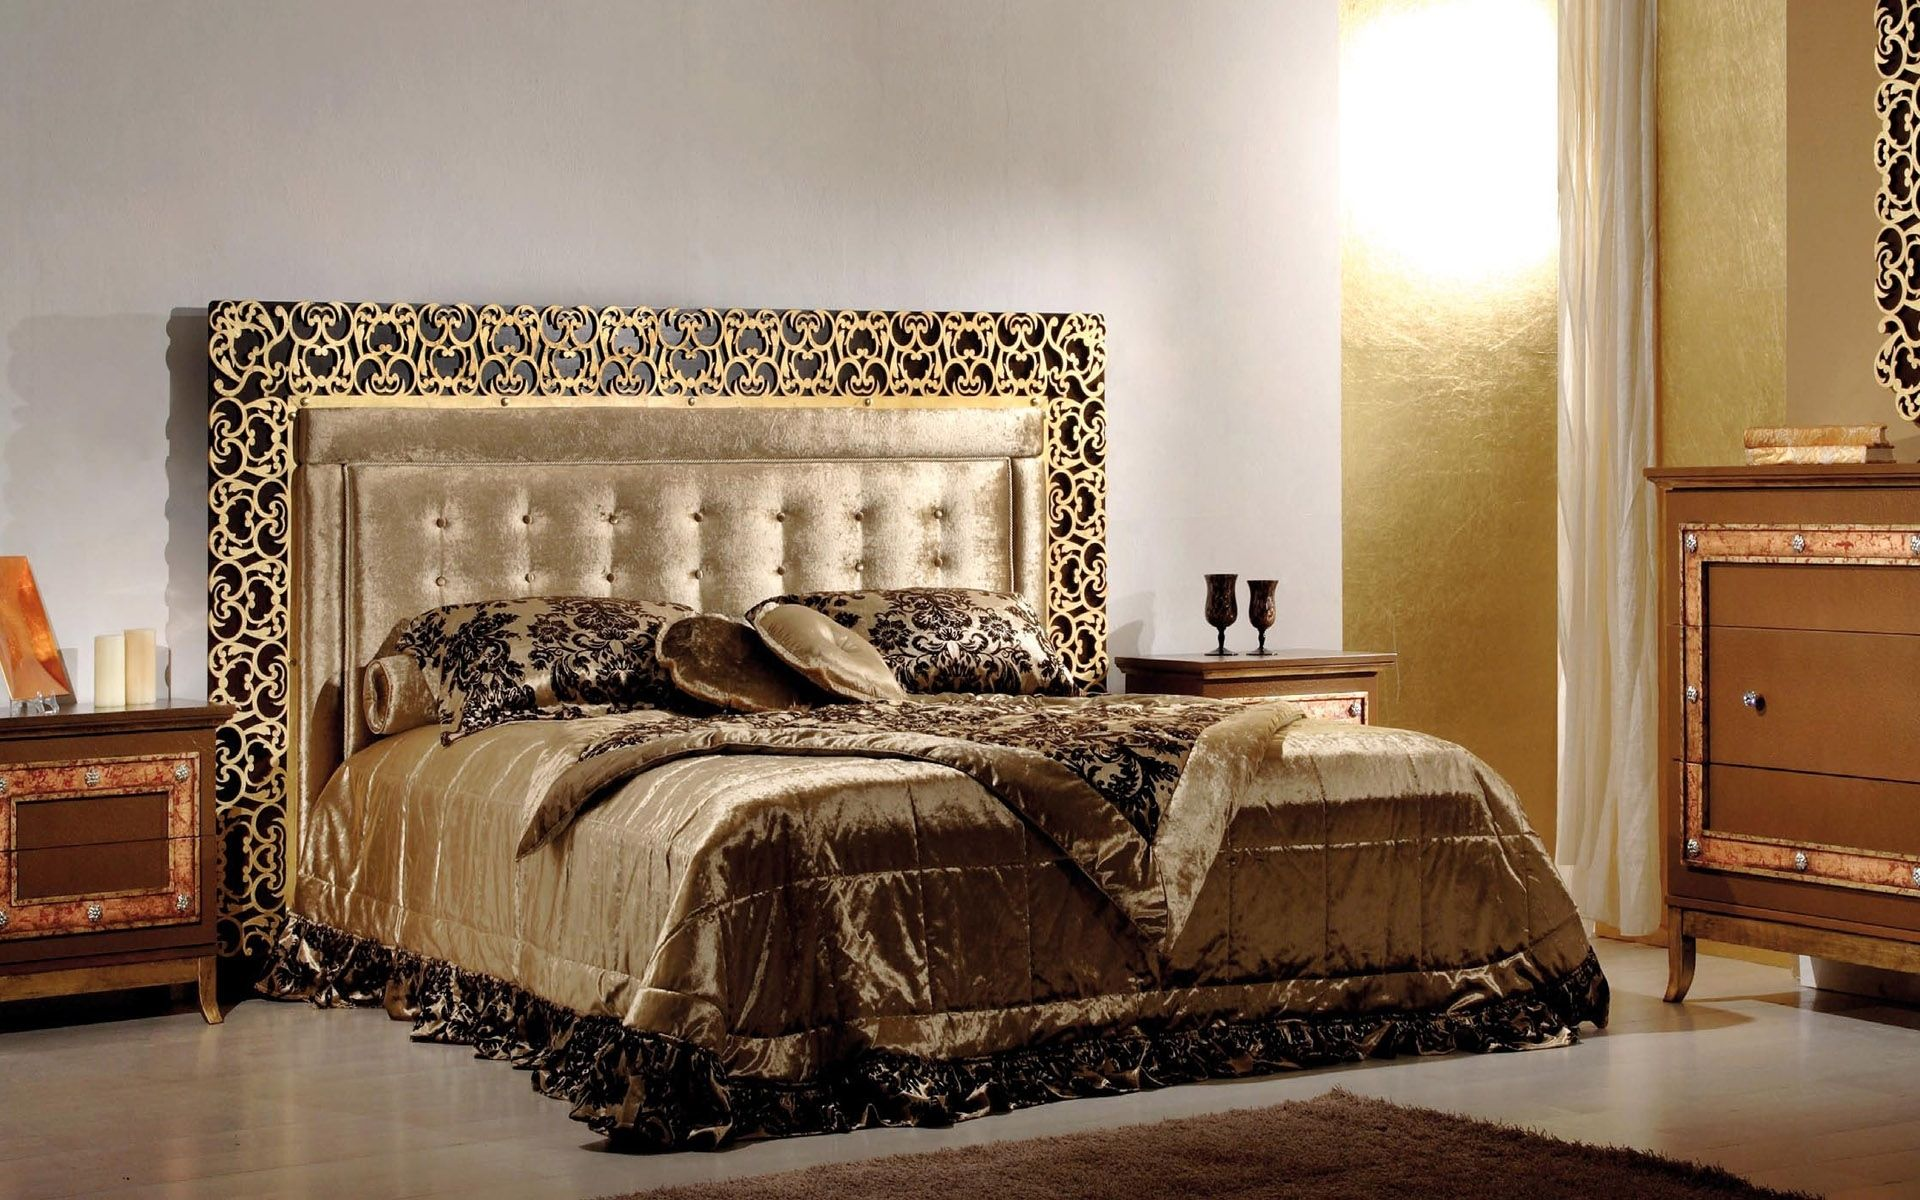 Luxury inspiration bed collection design modern gold black for Bedroom decor sets